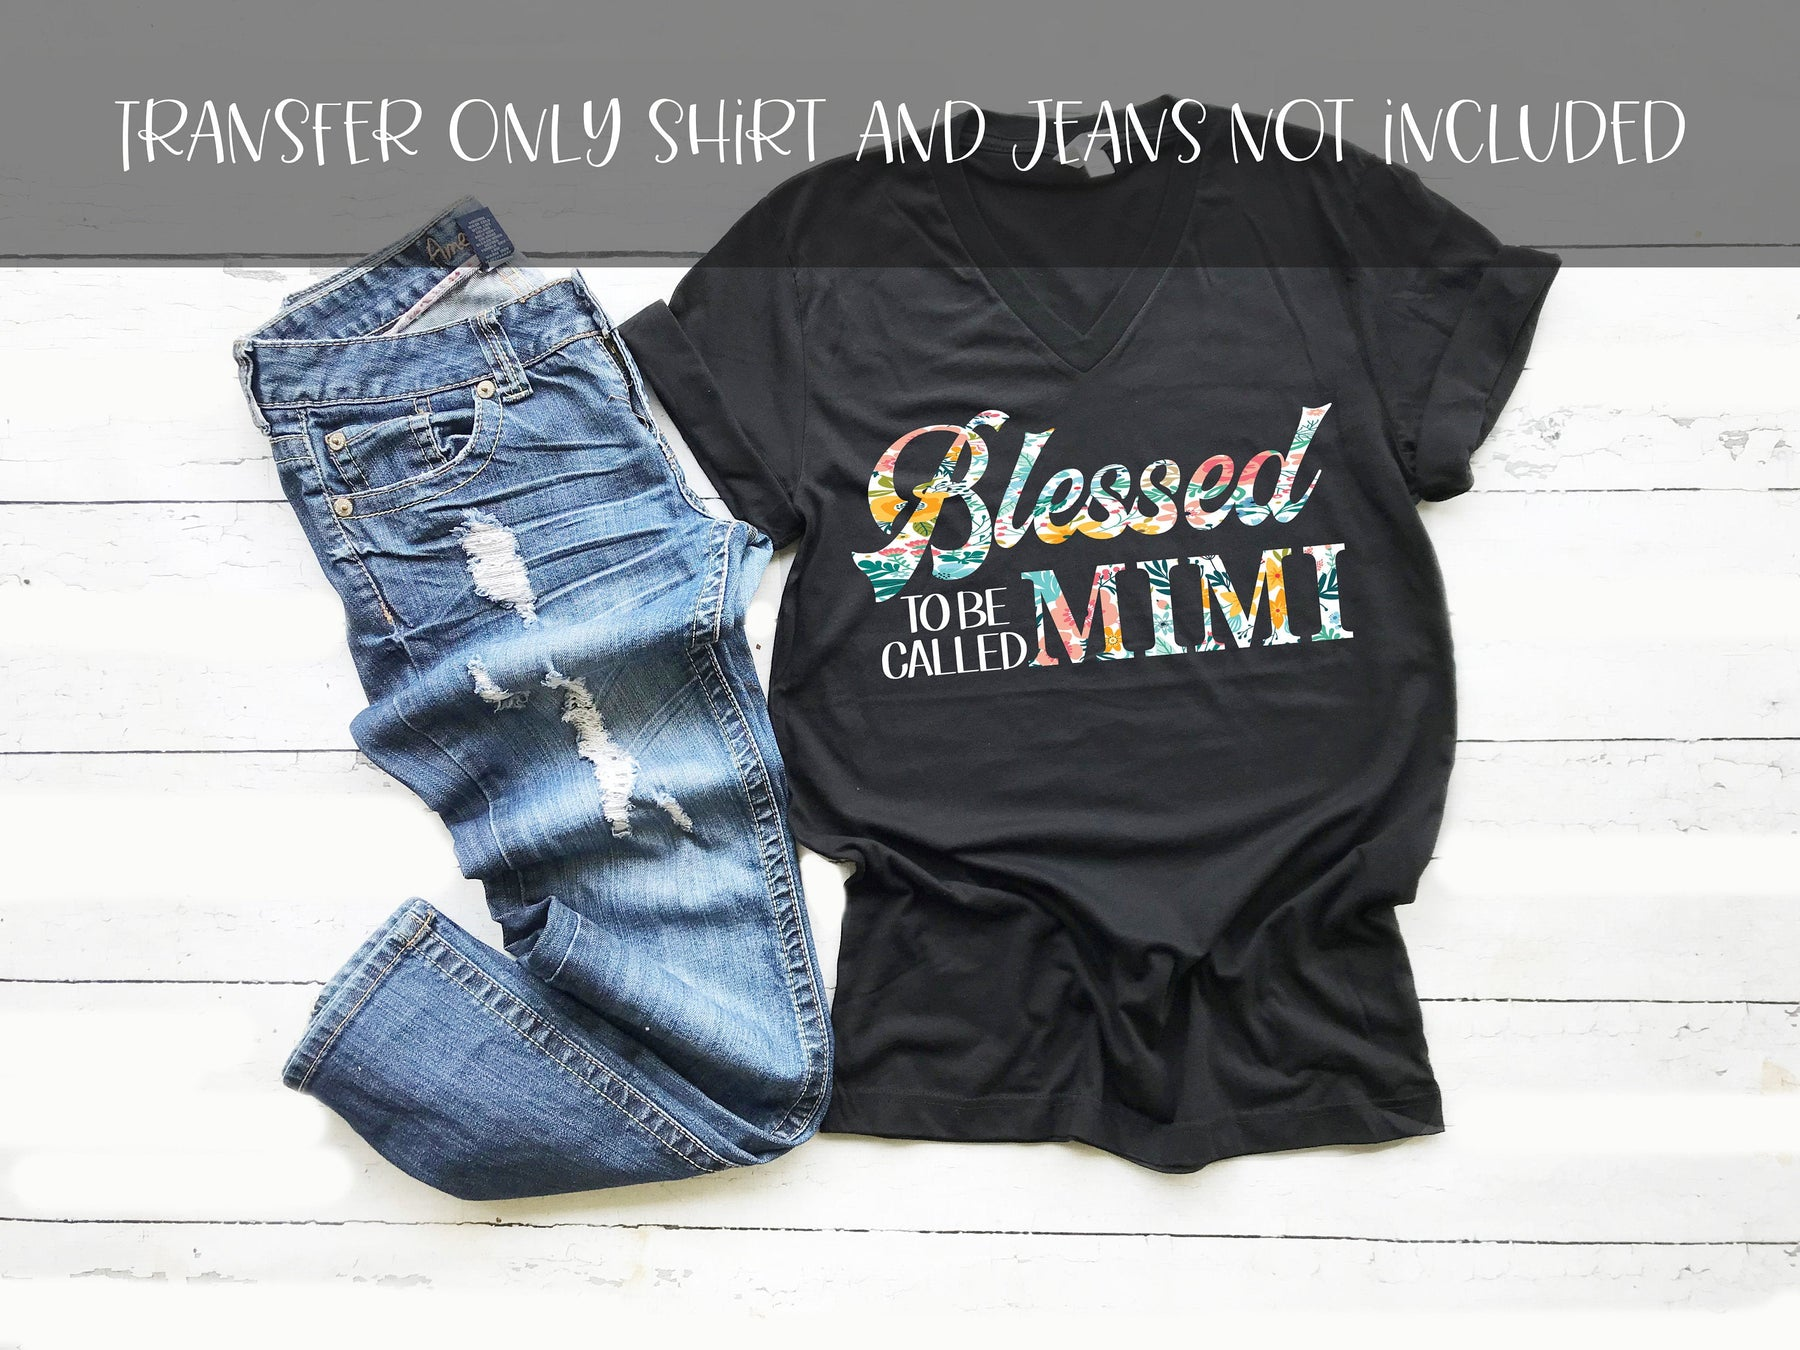 Blessed to be called mimi, Thanksgiving DIY iron on, Fall image transfer, Ready to Press, Iron on Ready, Thankful and blessed, blessed mimi